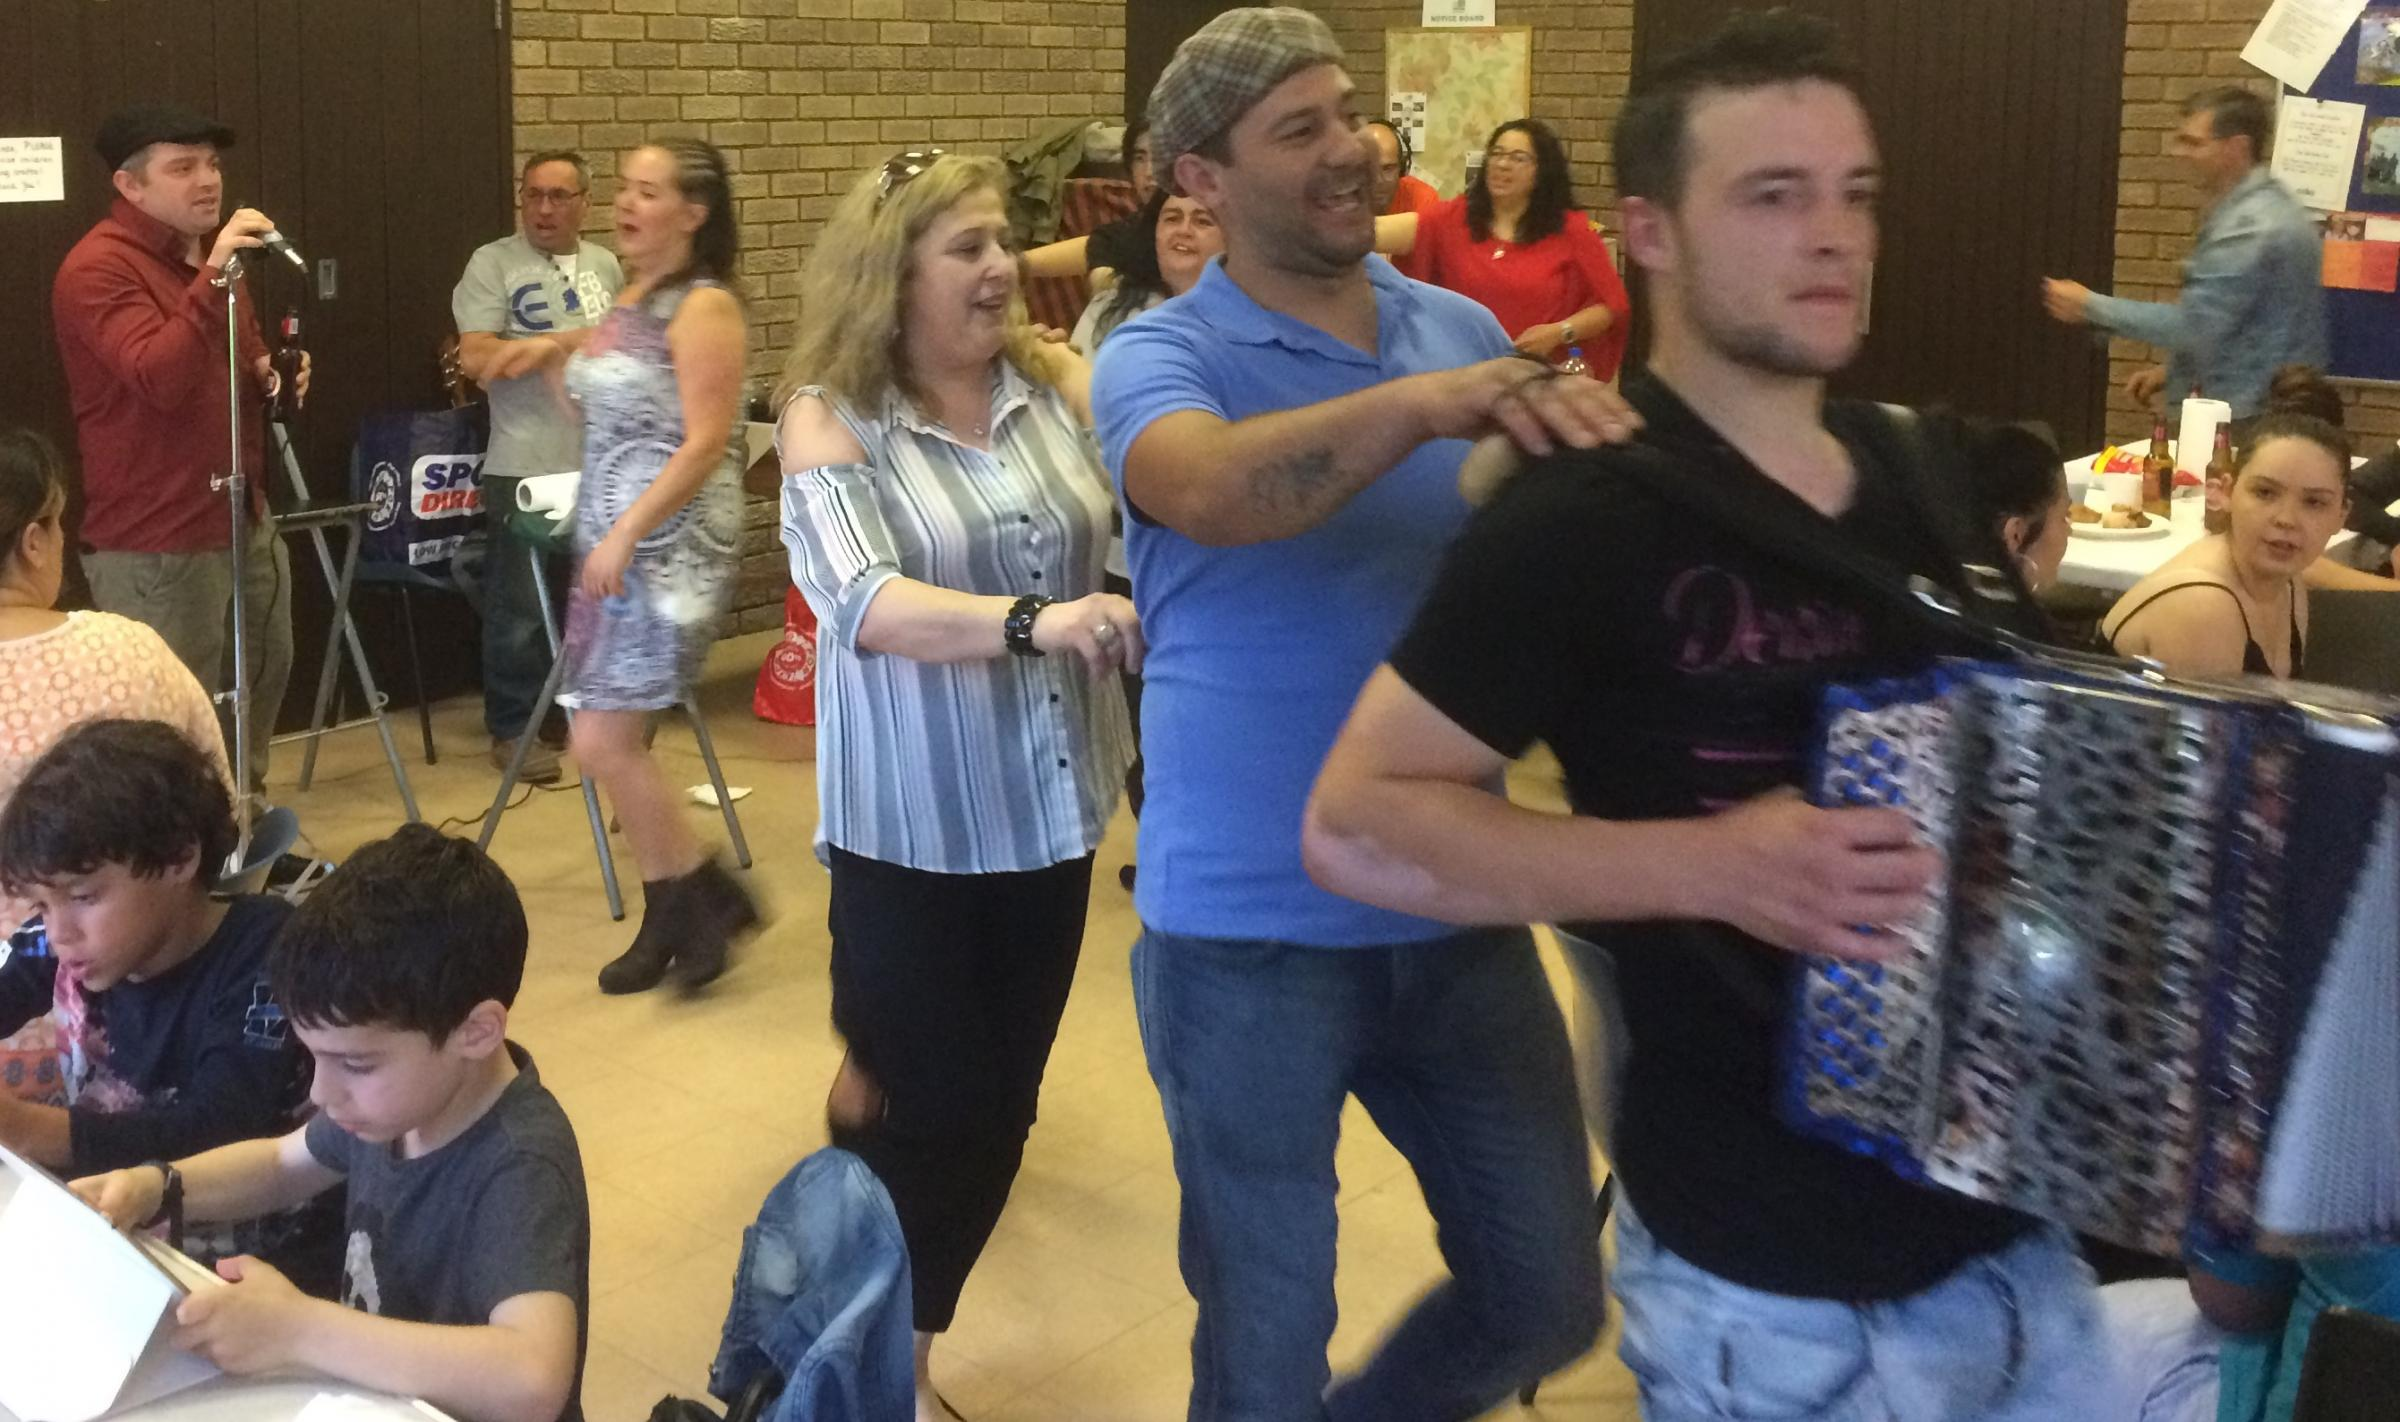 Cesario Martinho leads the dance, while playing the accordion, at the party in Hereford